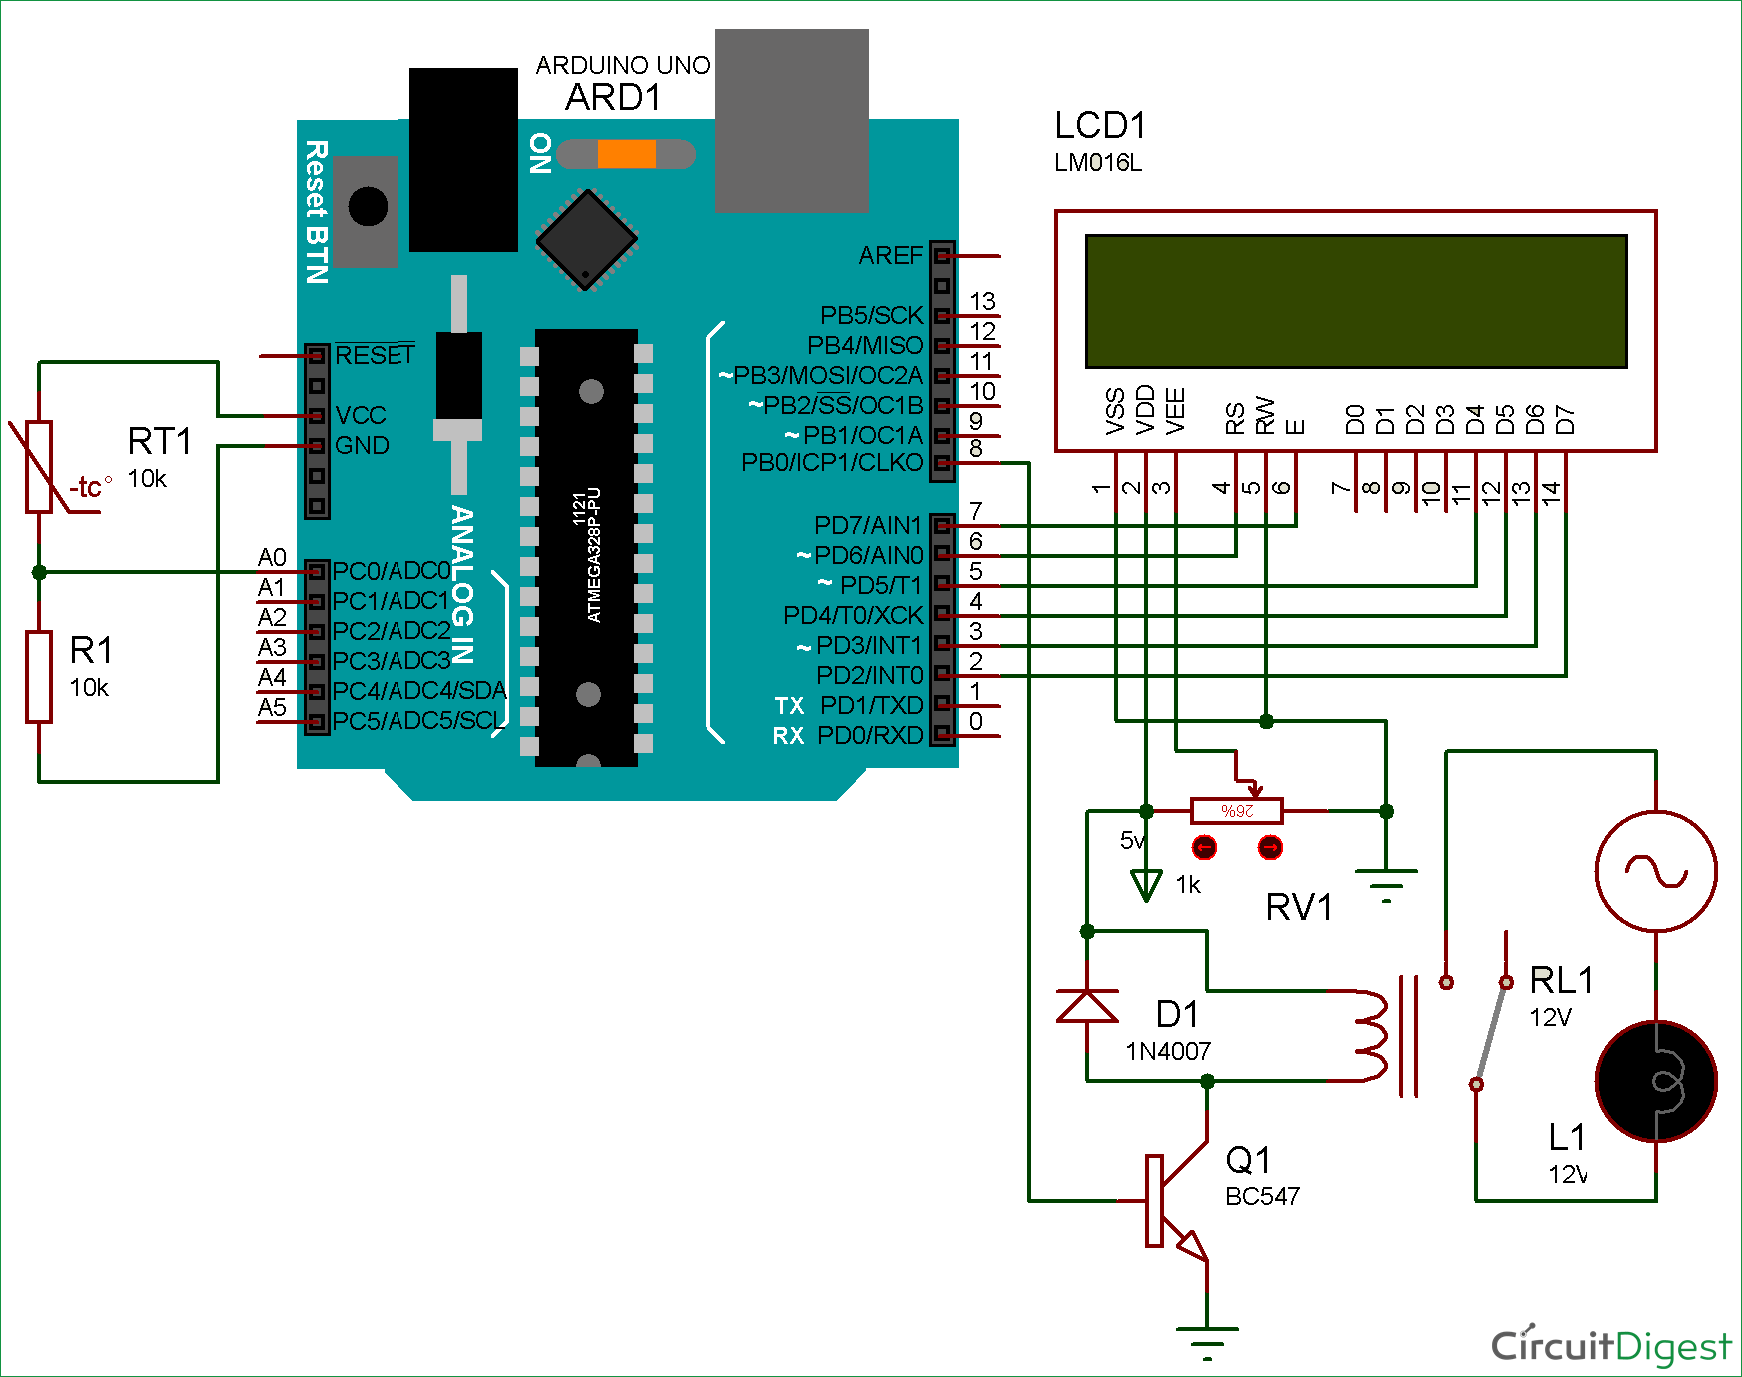 Circuit Diagram To Control Relay Using Arduino Based On Temperature Shows The Required 8051 Microcontroller